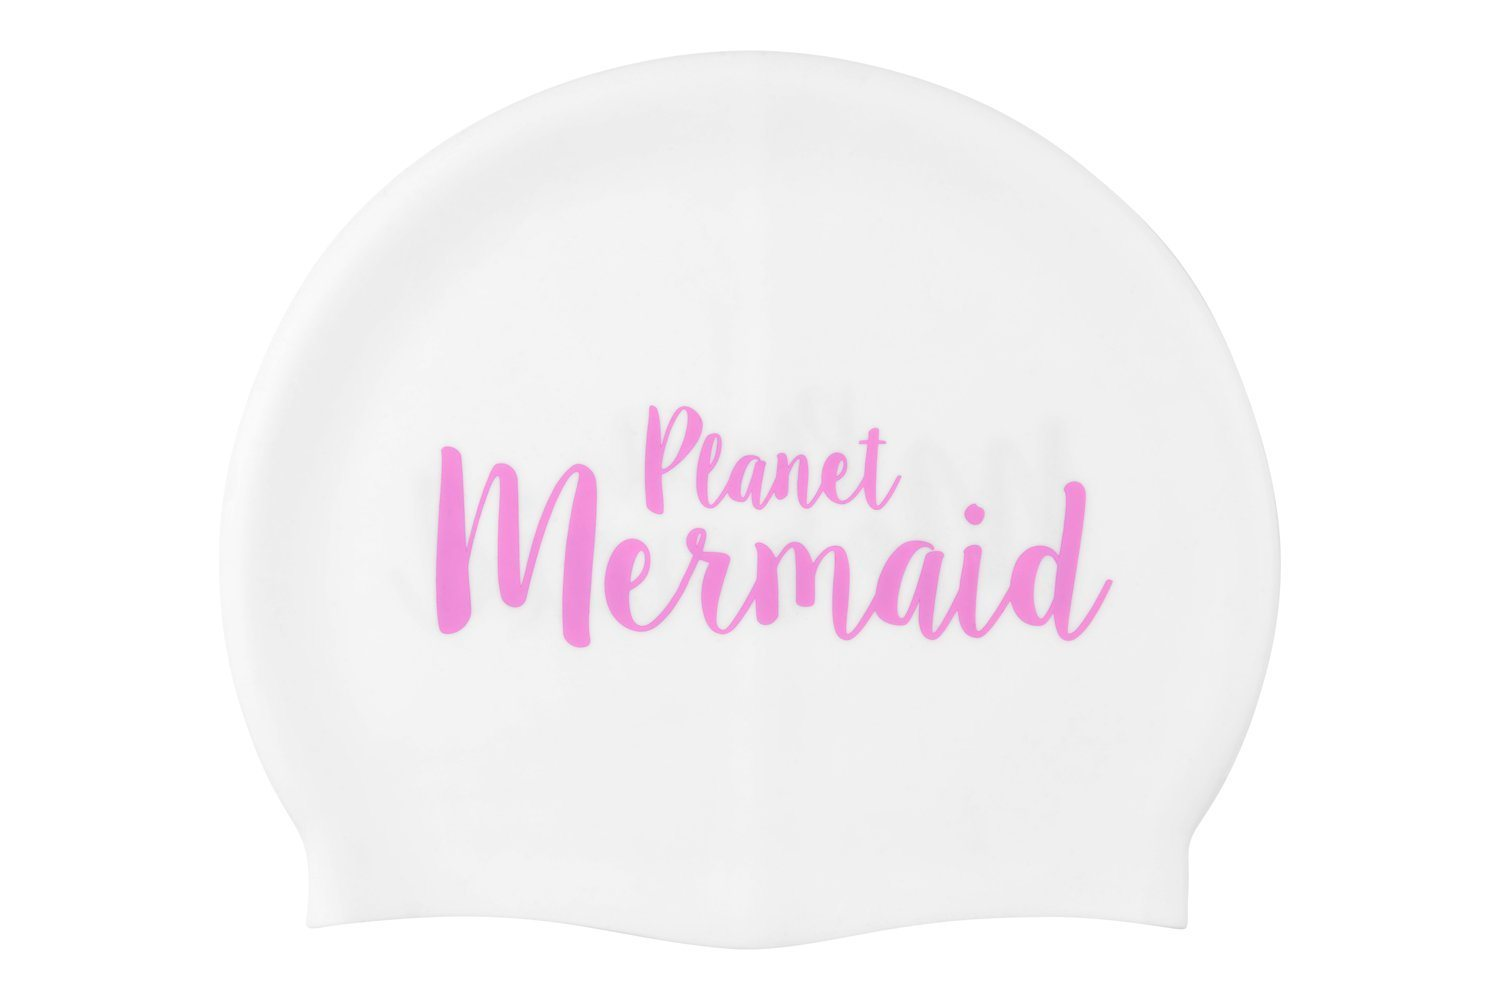 Mermaid swimming hat from Planet Mermaid